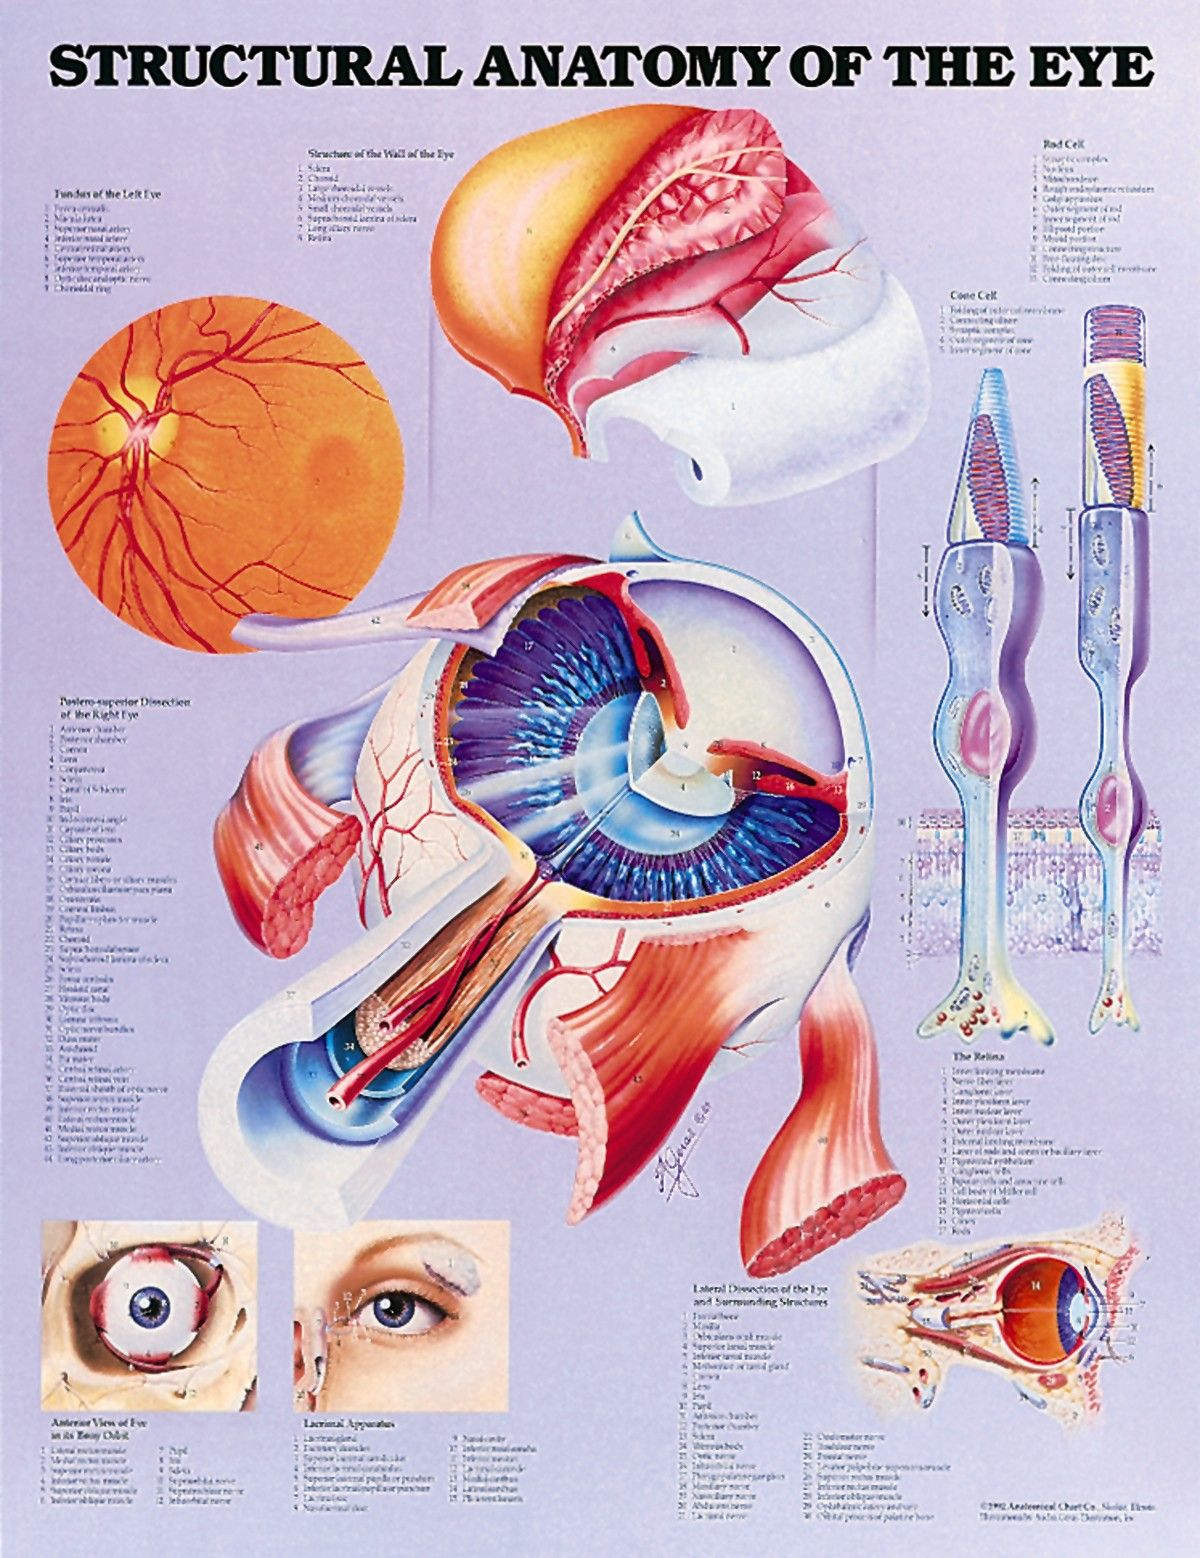 anatomy of the eye - Google Search | Physiology | Pinterest ...